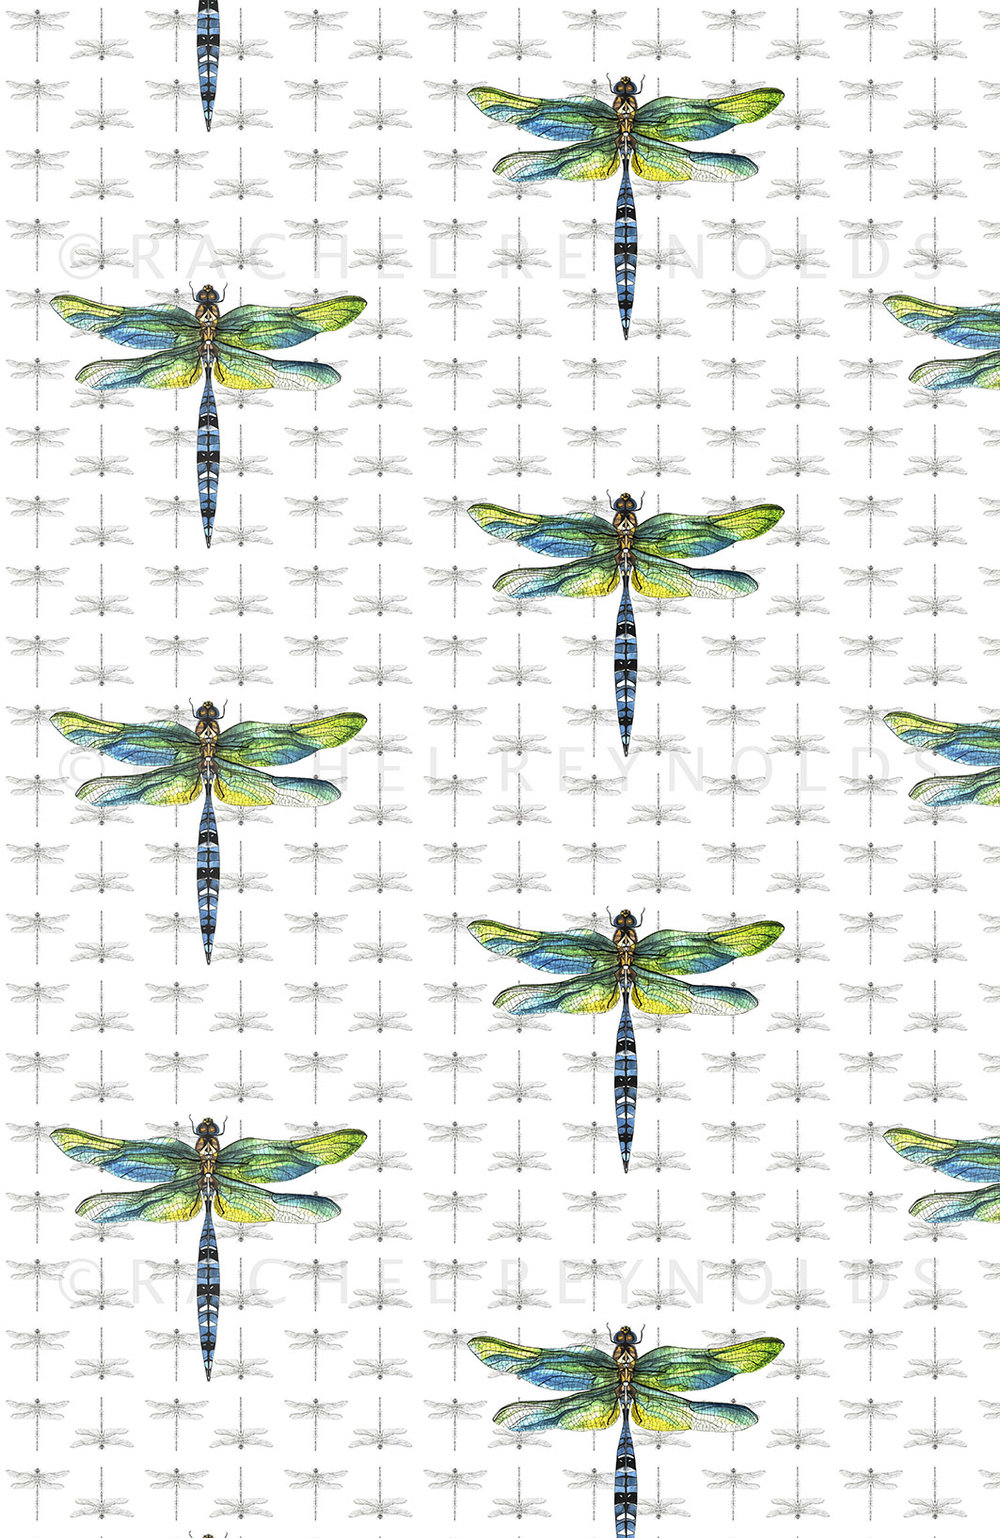 Dragonfly Wallpaper